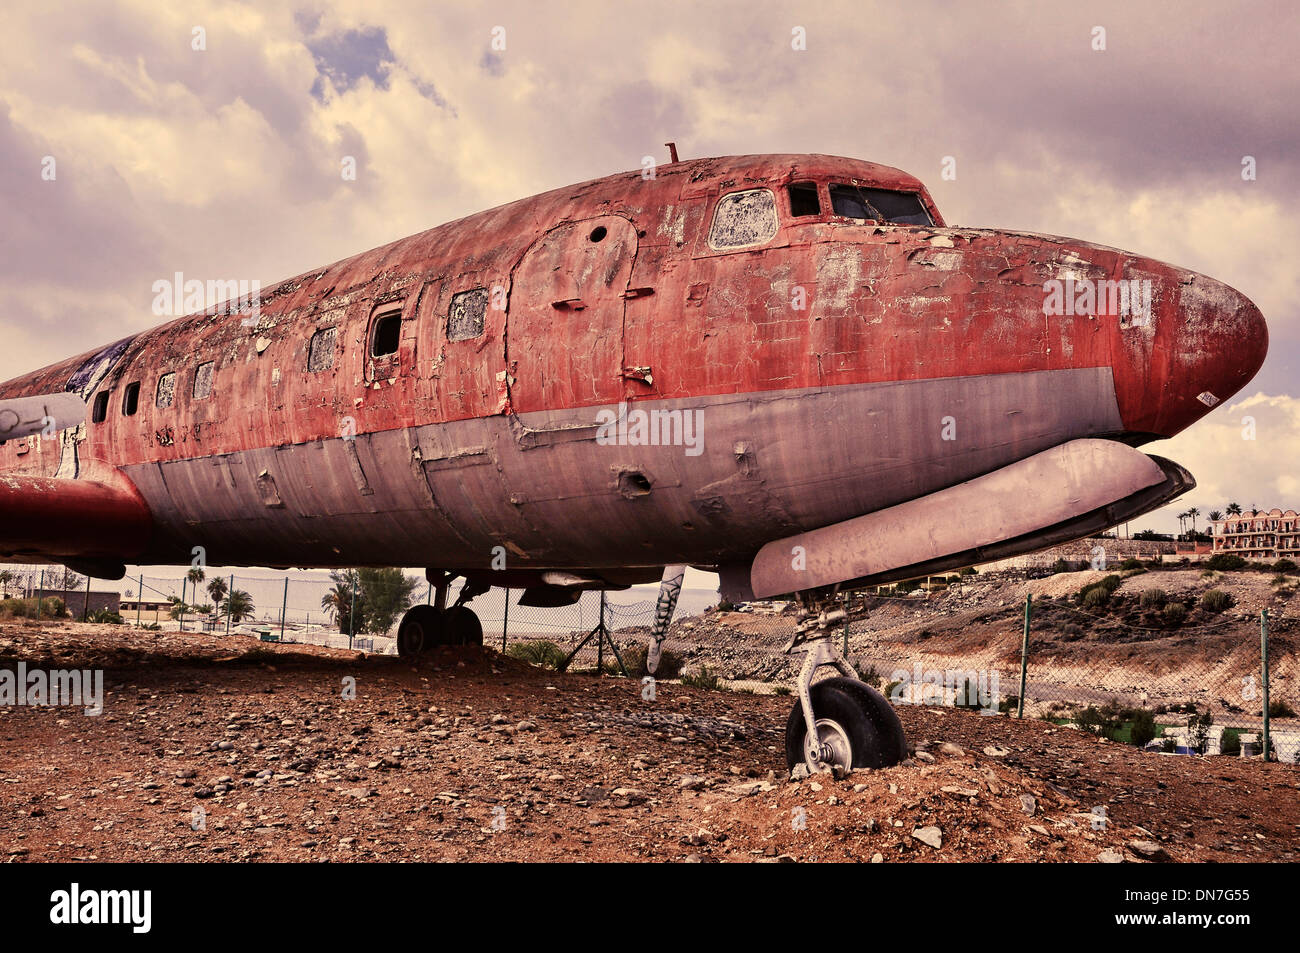 picture of an old and ramshackle airplane withdrawn from circulation - Stock Image